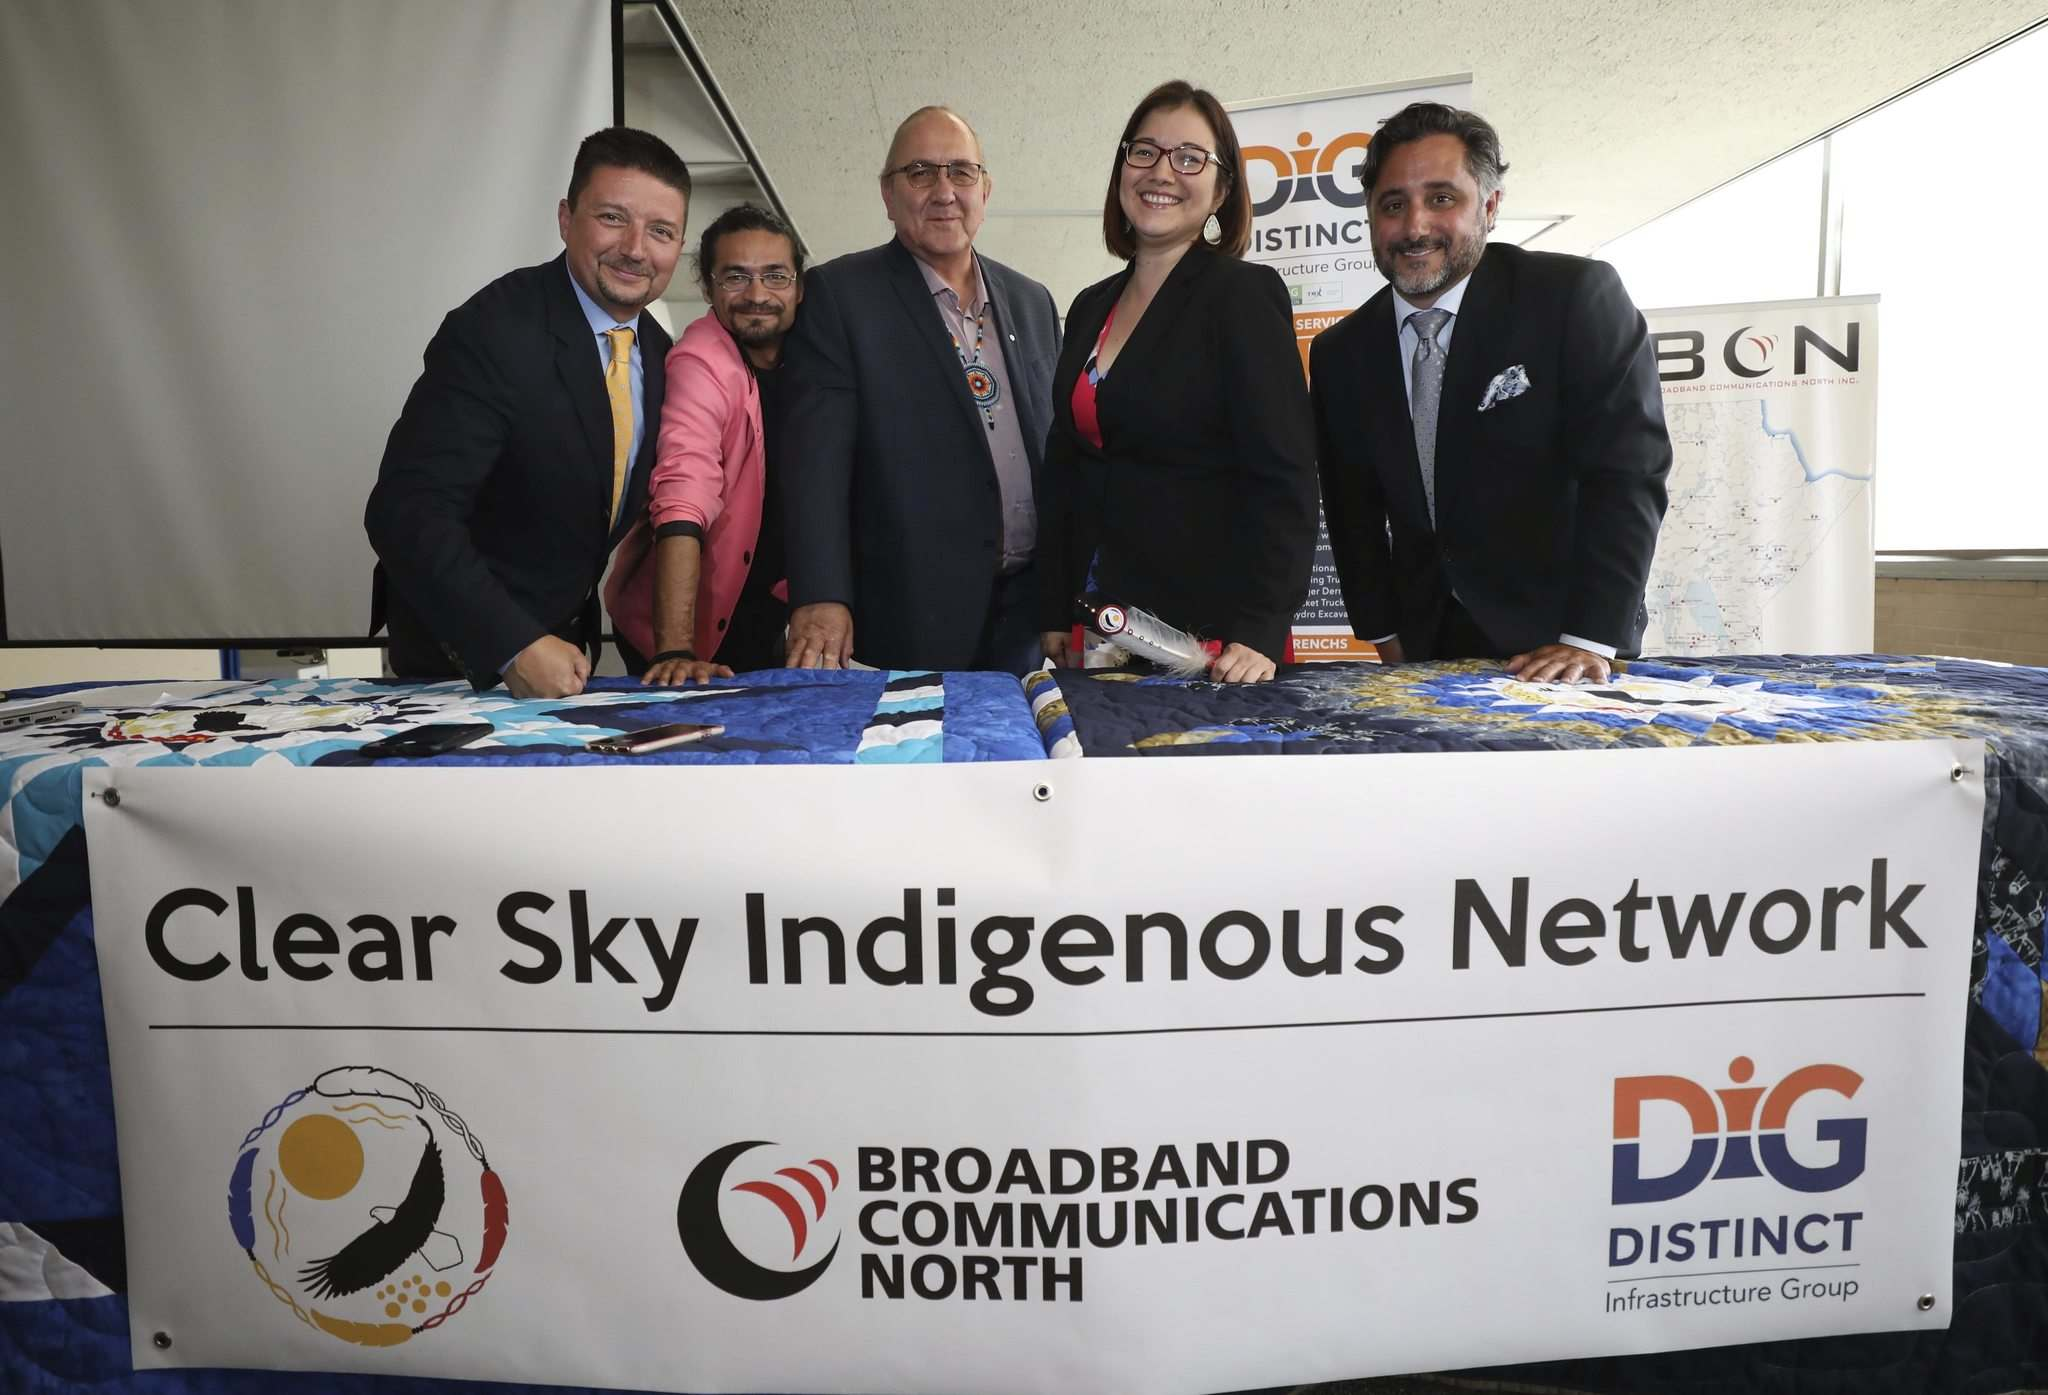 RUTH BONNEVILLE / WINNIPEG FREE PRESS</p><p>Alex Agius (from left) of Distinct Infrastructure Group (DIG), Ken Sanderson, executive director of Broadband Communications North, Clear Sky Connections board vice-president David Crate, Clear Sky CEO Lisa Clarke and Joe Lanni of DIG Inc. celebrate the announcement of a joint venture between three companies, which will bring high-speed internet to First Nations and surrounding communities across northern Manitoba.</p>